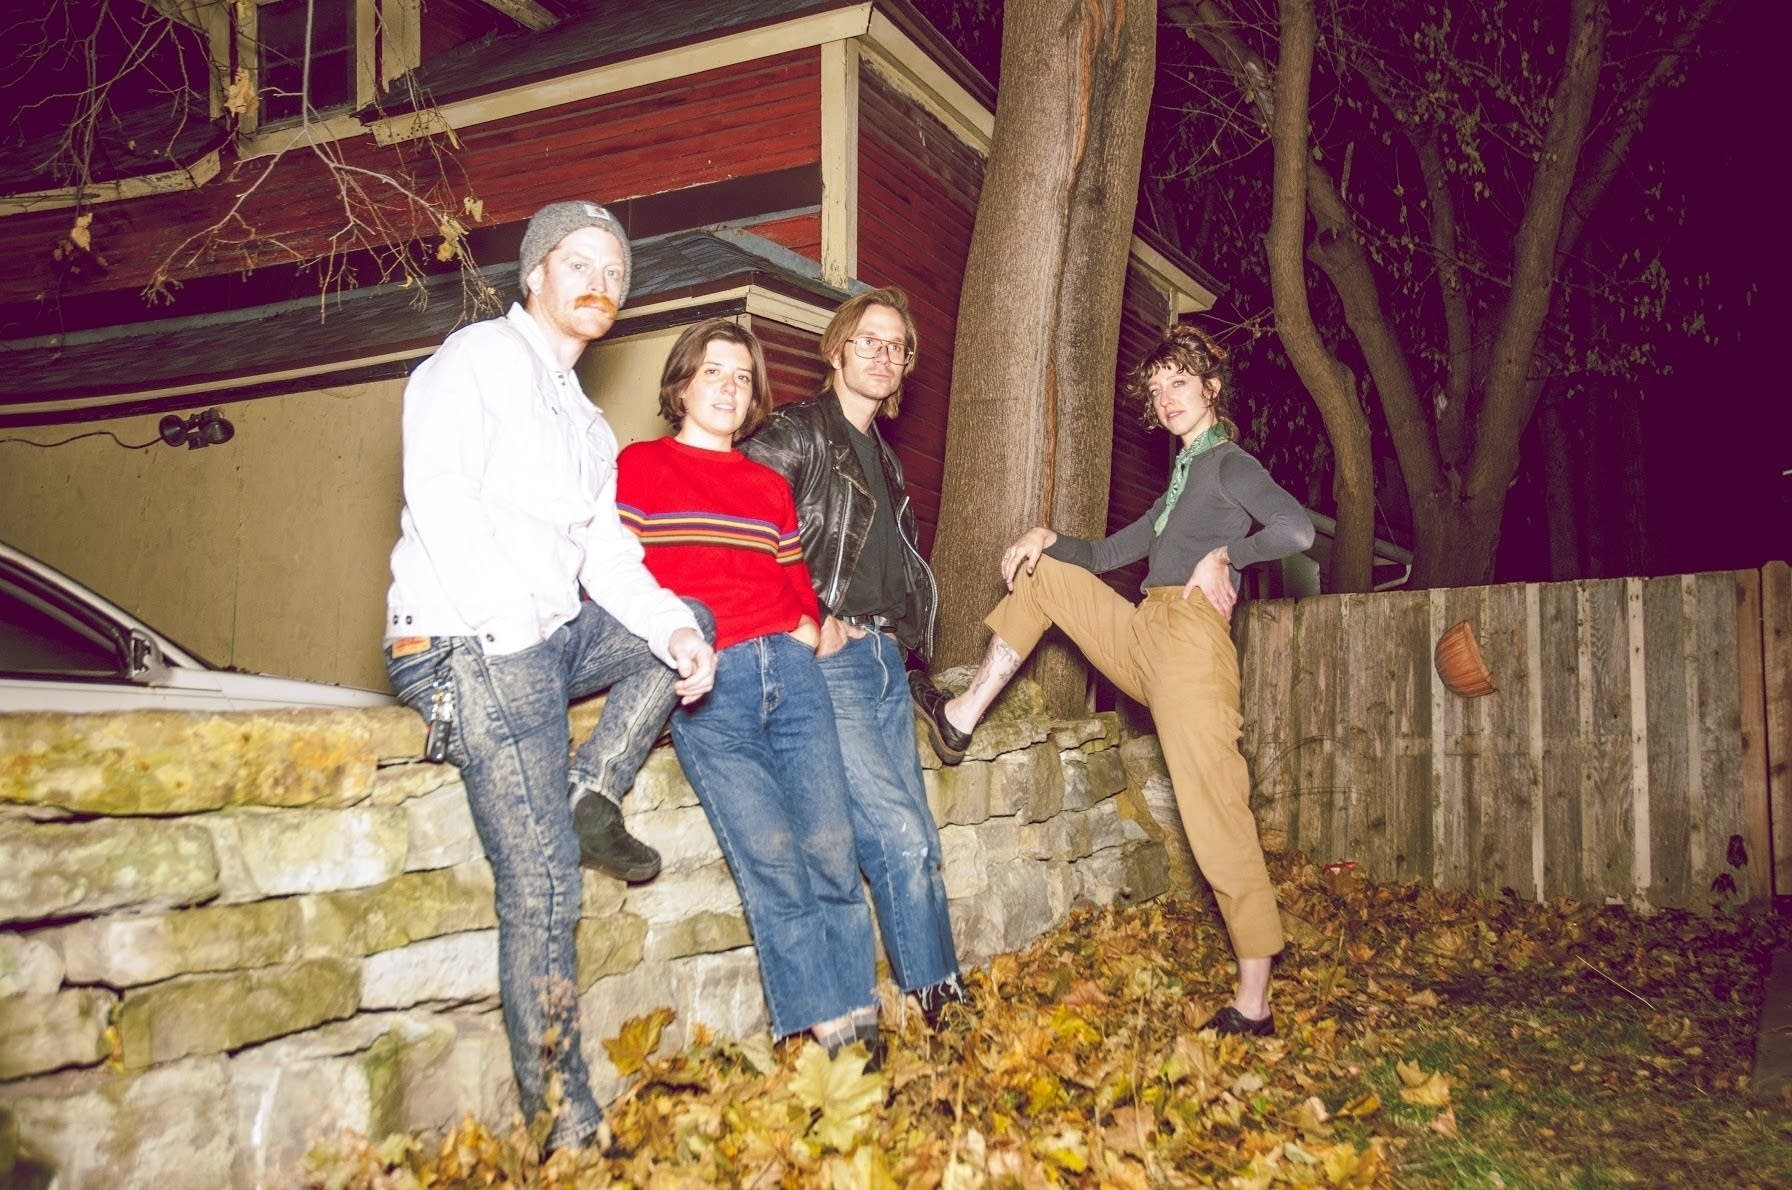 Four people leaning against a wall.